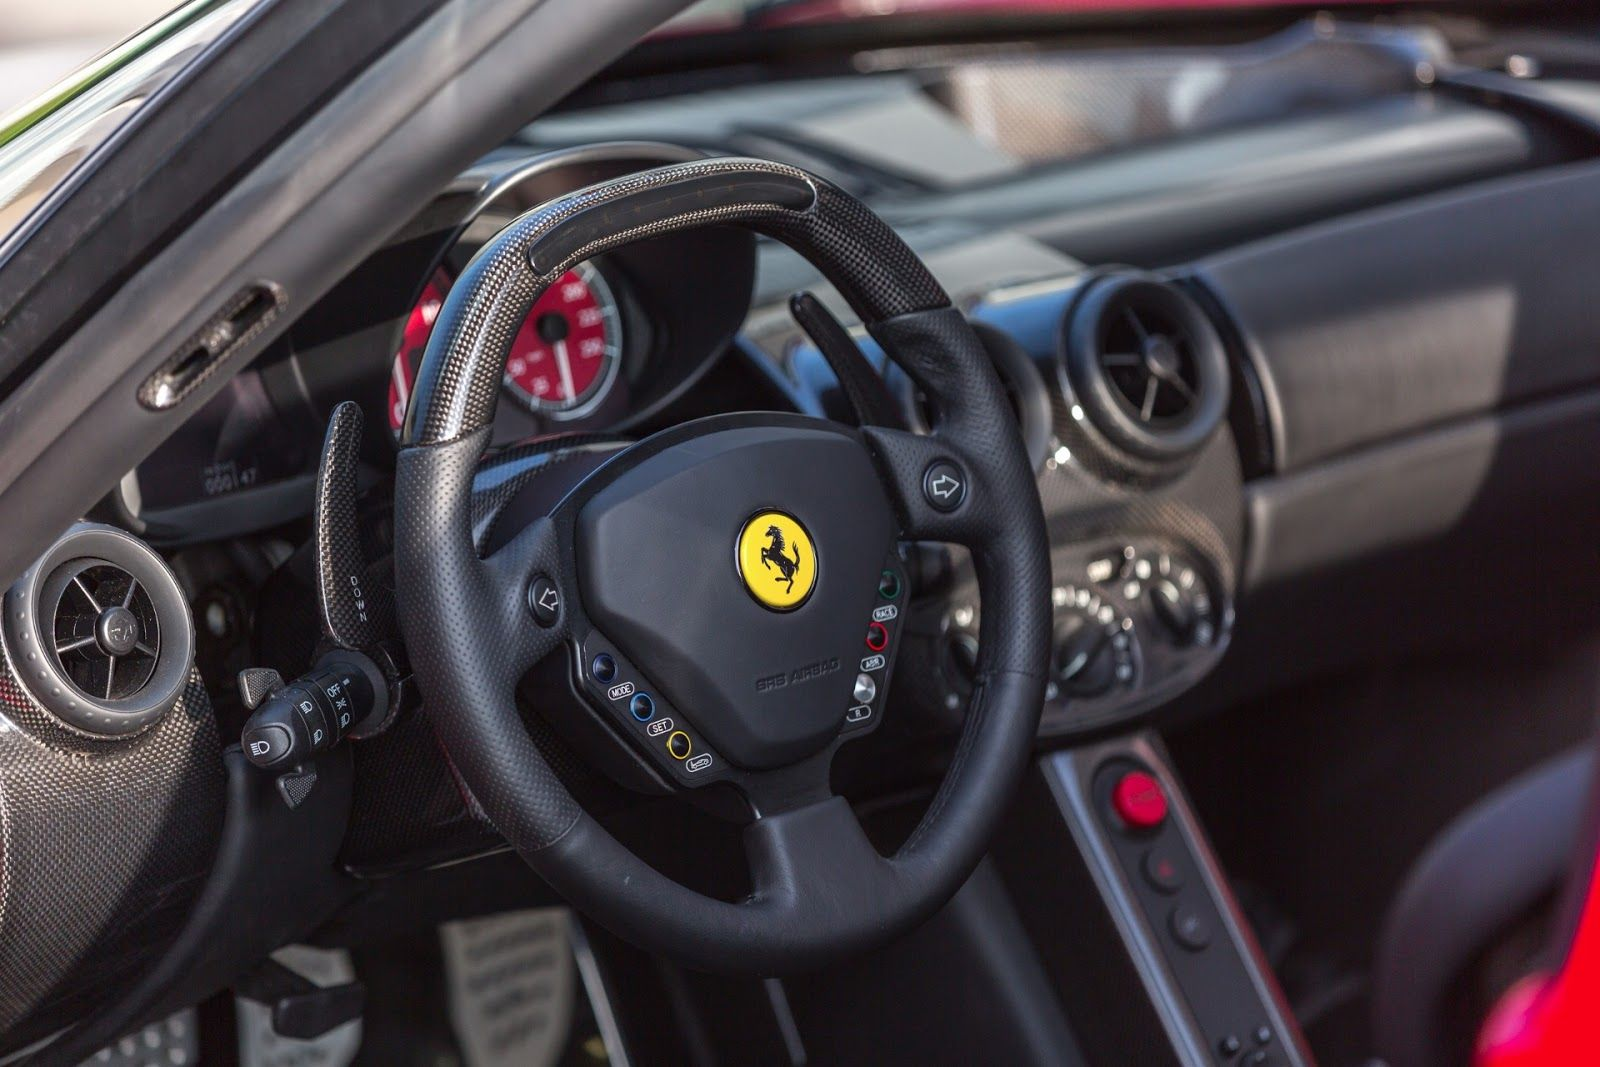 A spectacular Ferrari Enzo with just 141 miles on the clock is for sale!